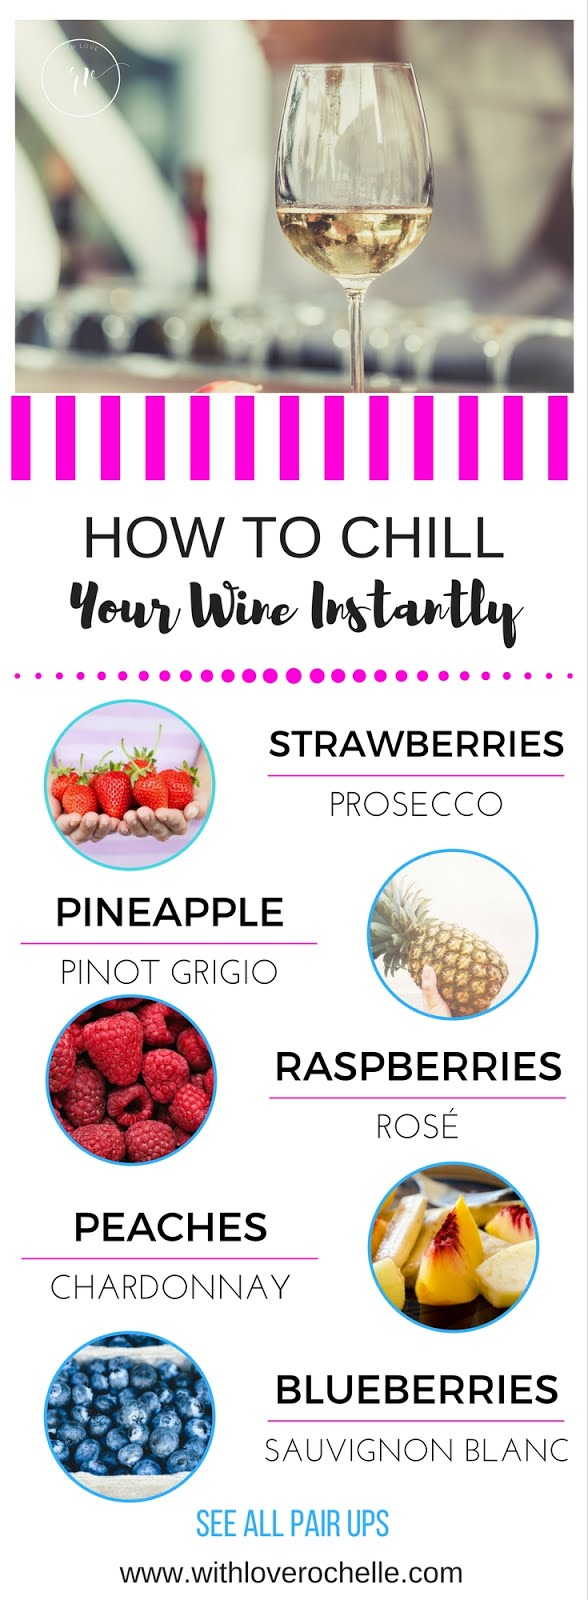 Simply ideas on which fruits to pair with your wine to keep it chilled. Add in these frozen or chilled fruits to enjoy the perfect glass of wine.